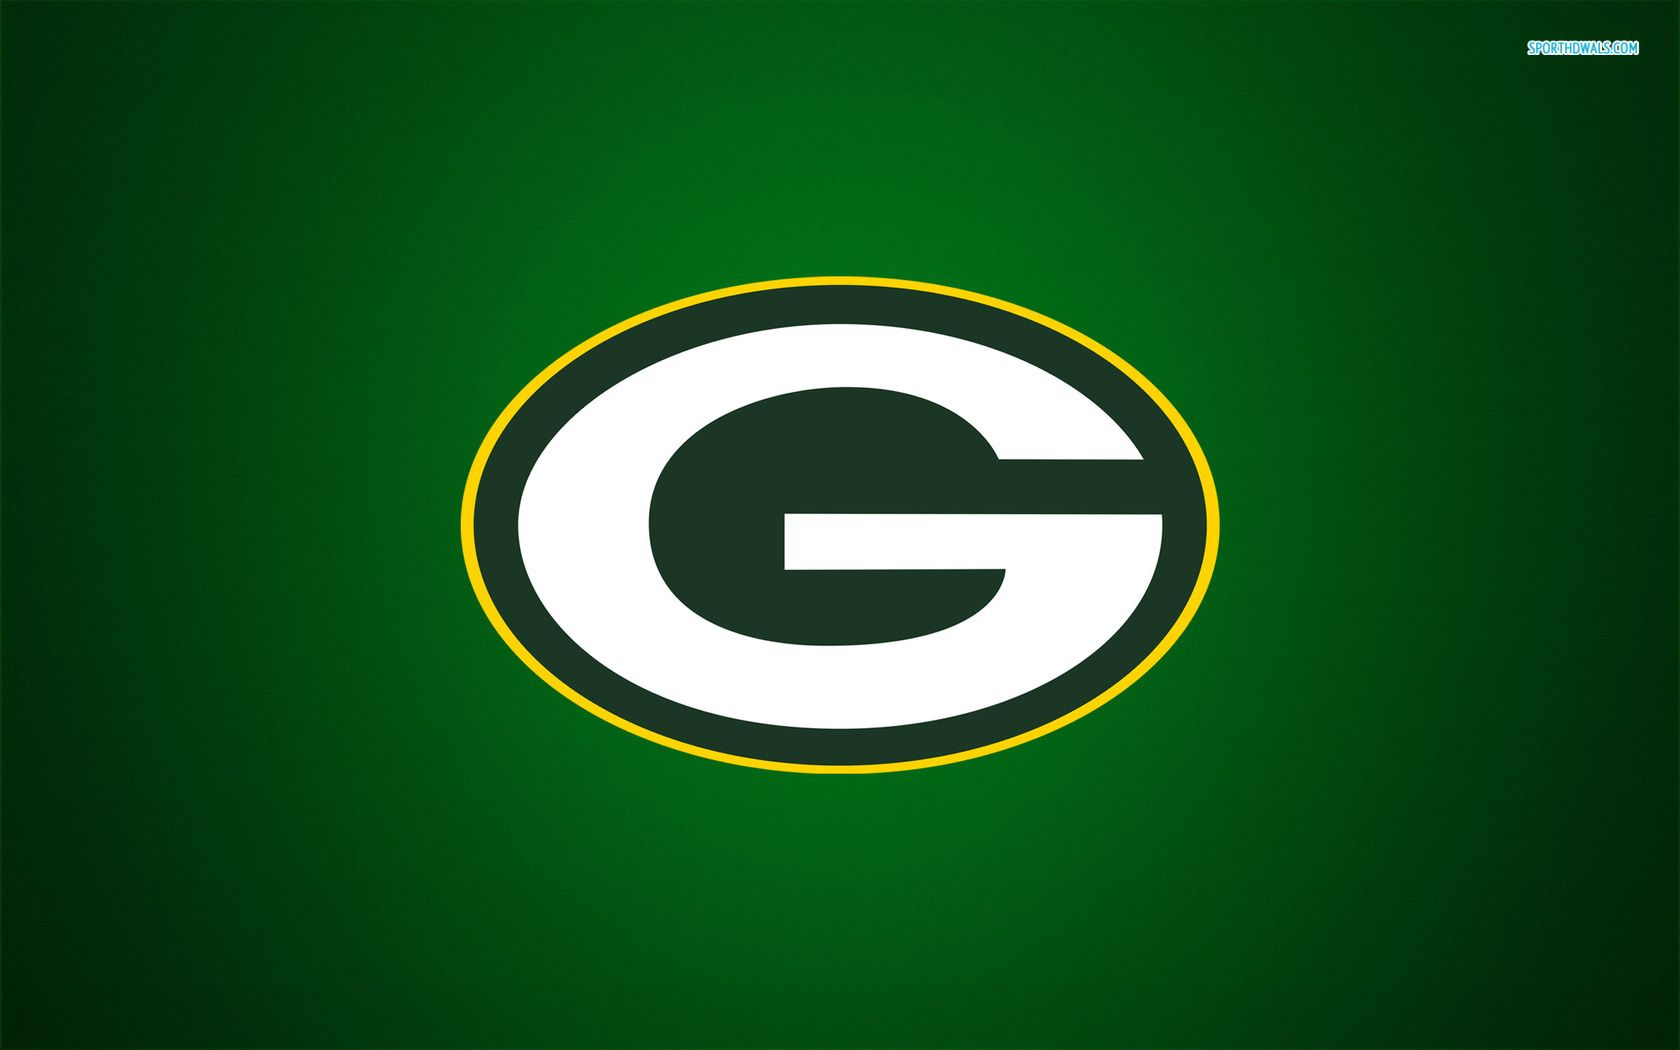 Green Bay Packers Wallpaper Green Bay Packers Packers Football Nfl Green Bay